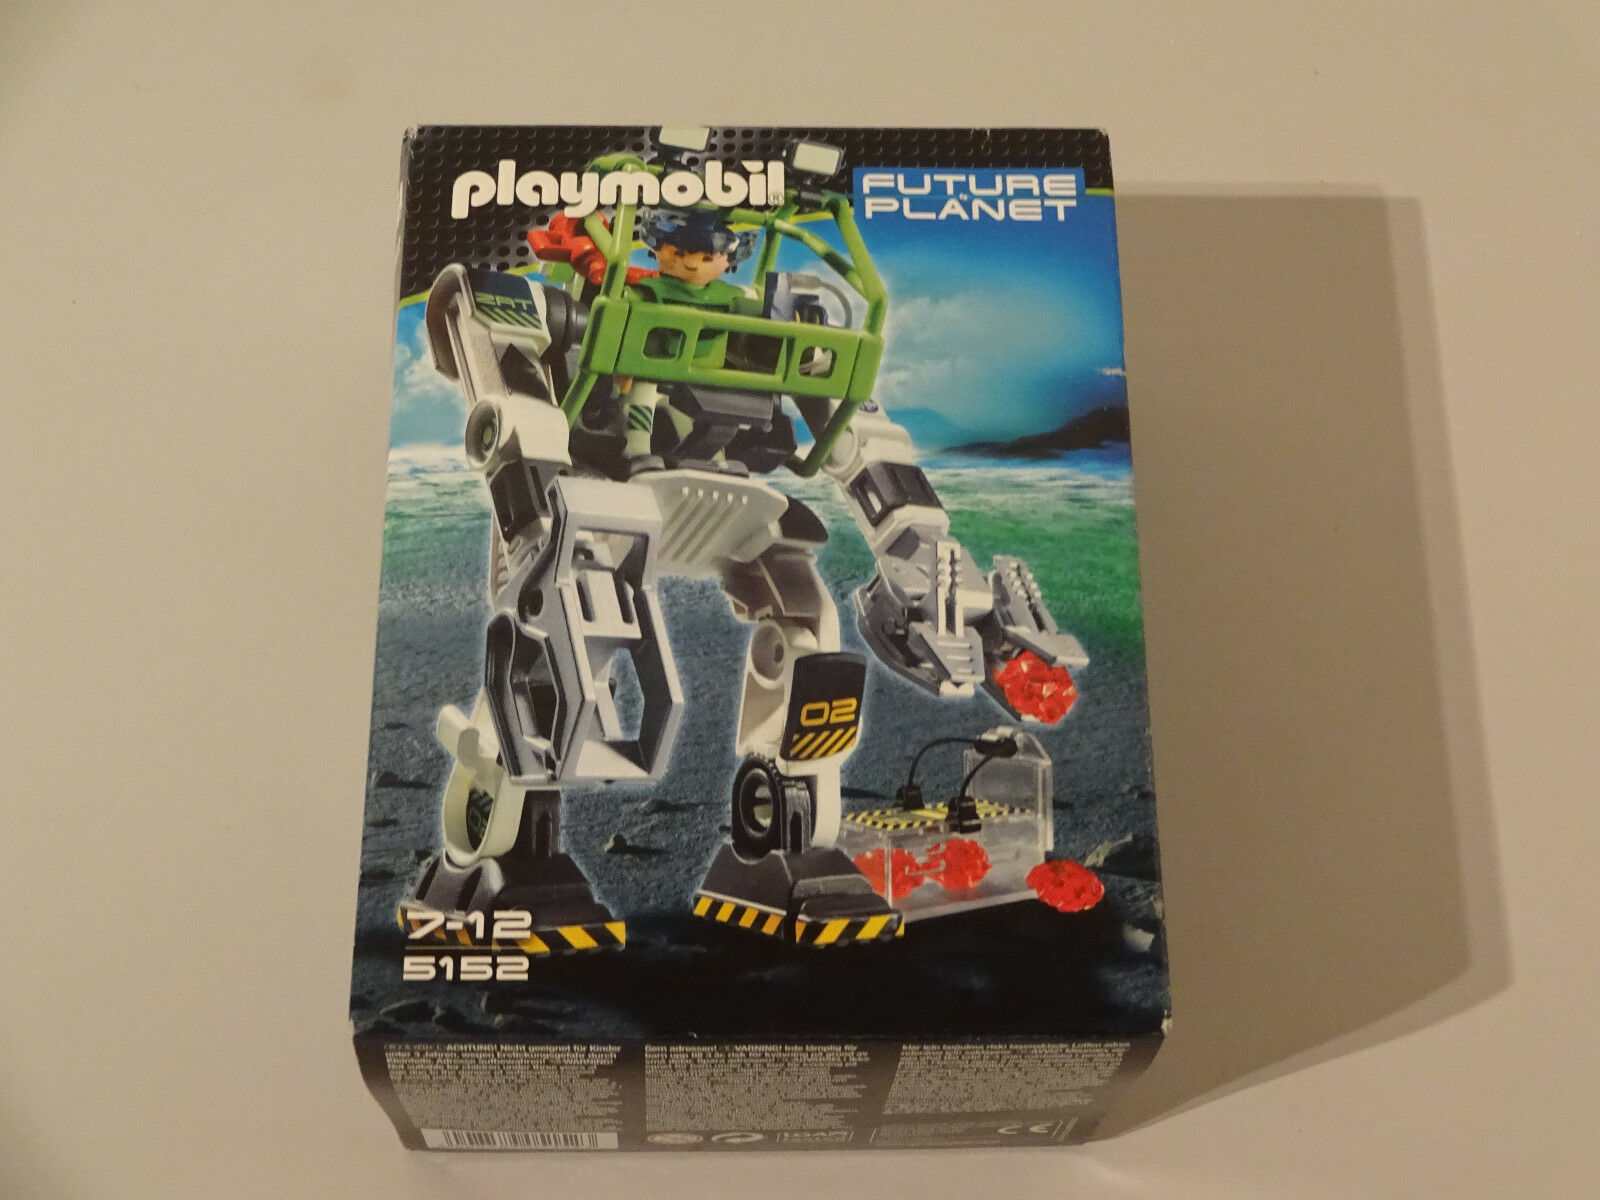 ( GO) KLICKY 5152 E-RANGER COLLECTOBO FUTURE PLANET NEU   OVP TOP ZUSTAND